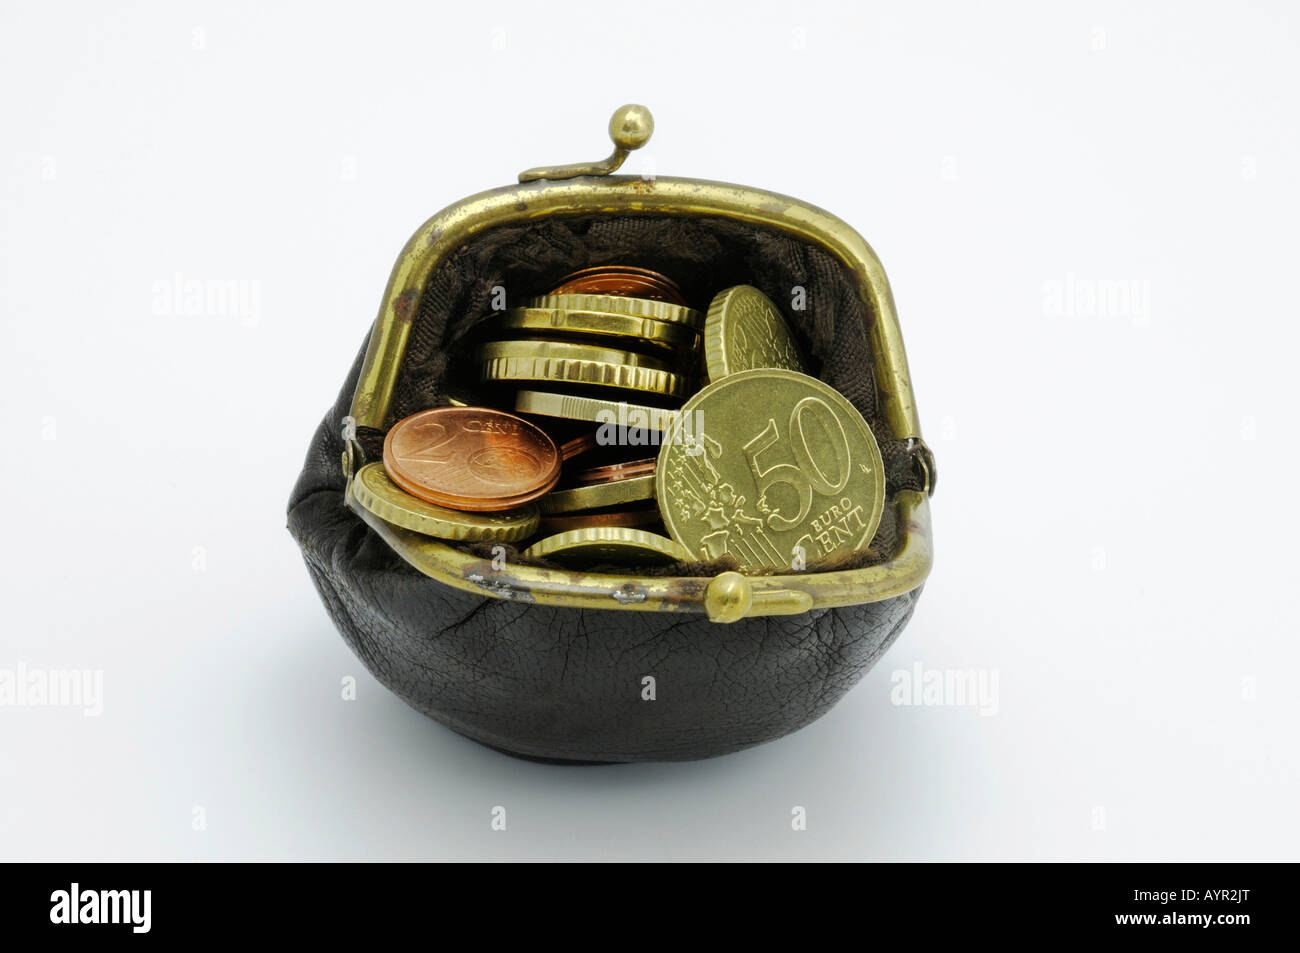 Change purse filled with Euro coins - Stock Image